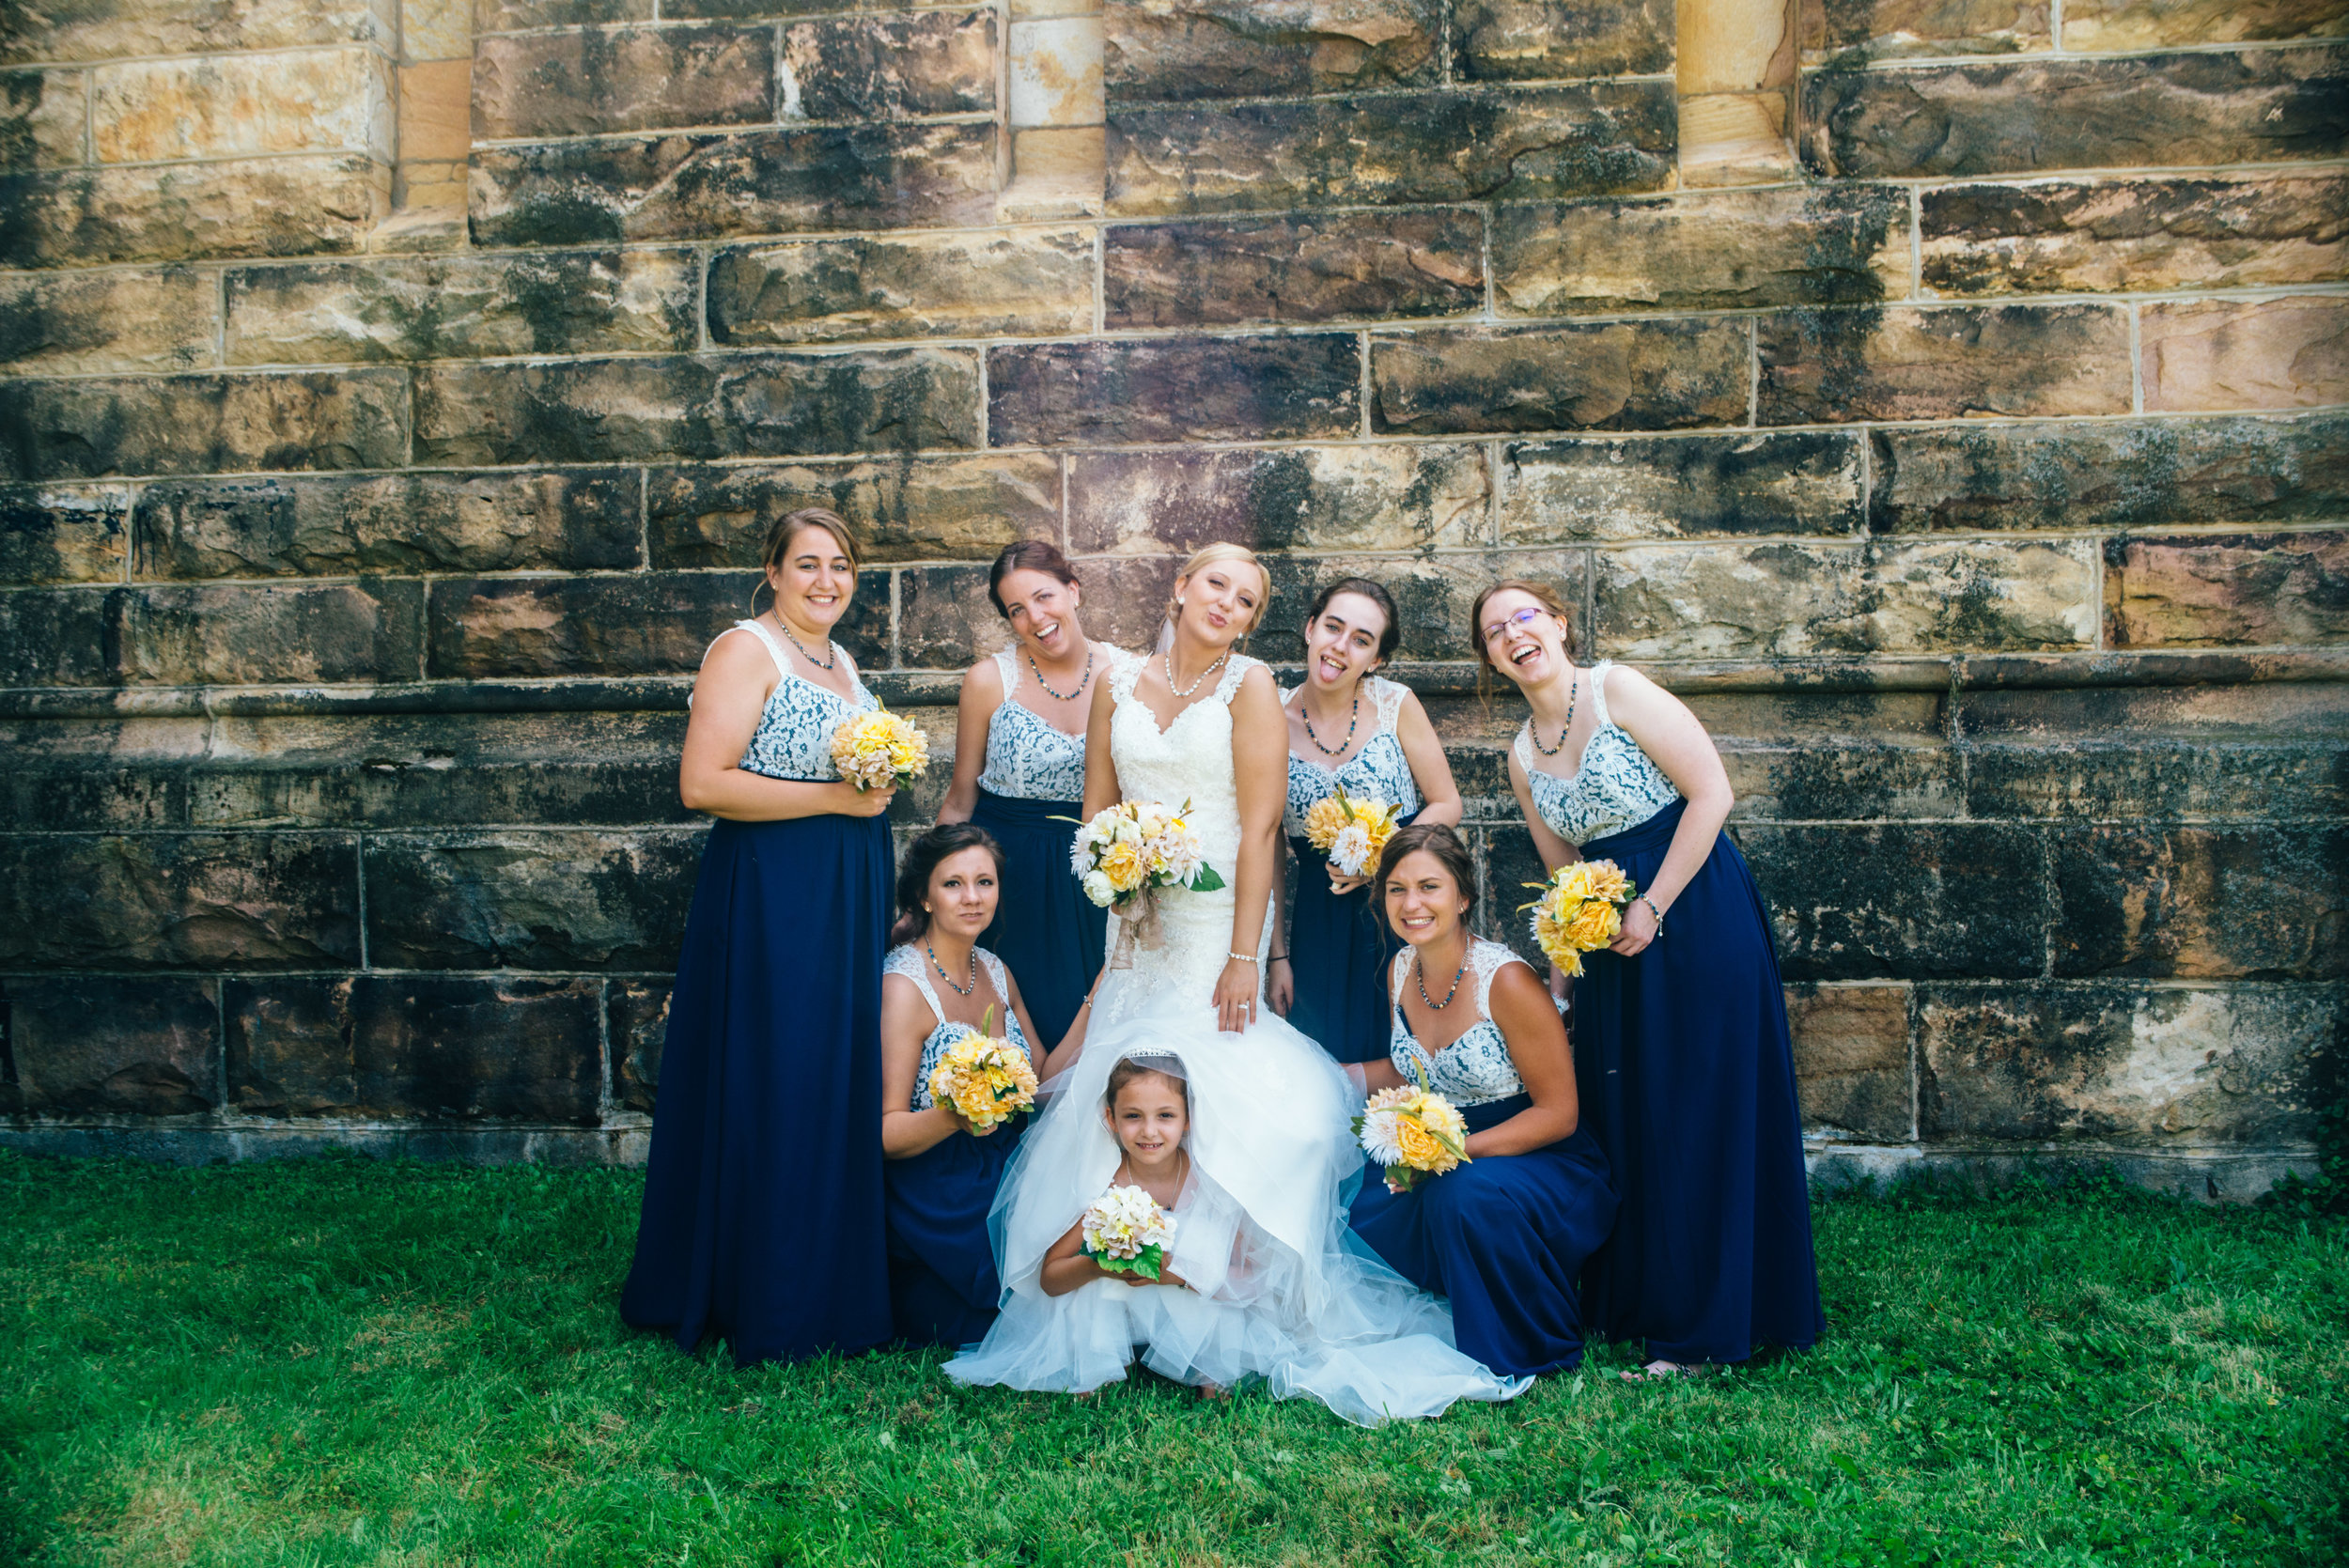 Bridesmaids posing for a silly group shot at Old Cambria County jail in Ebensburg, PA